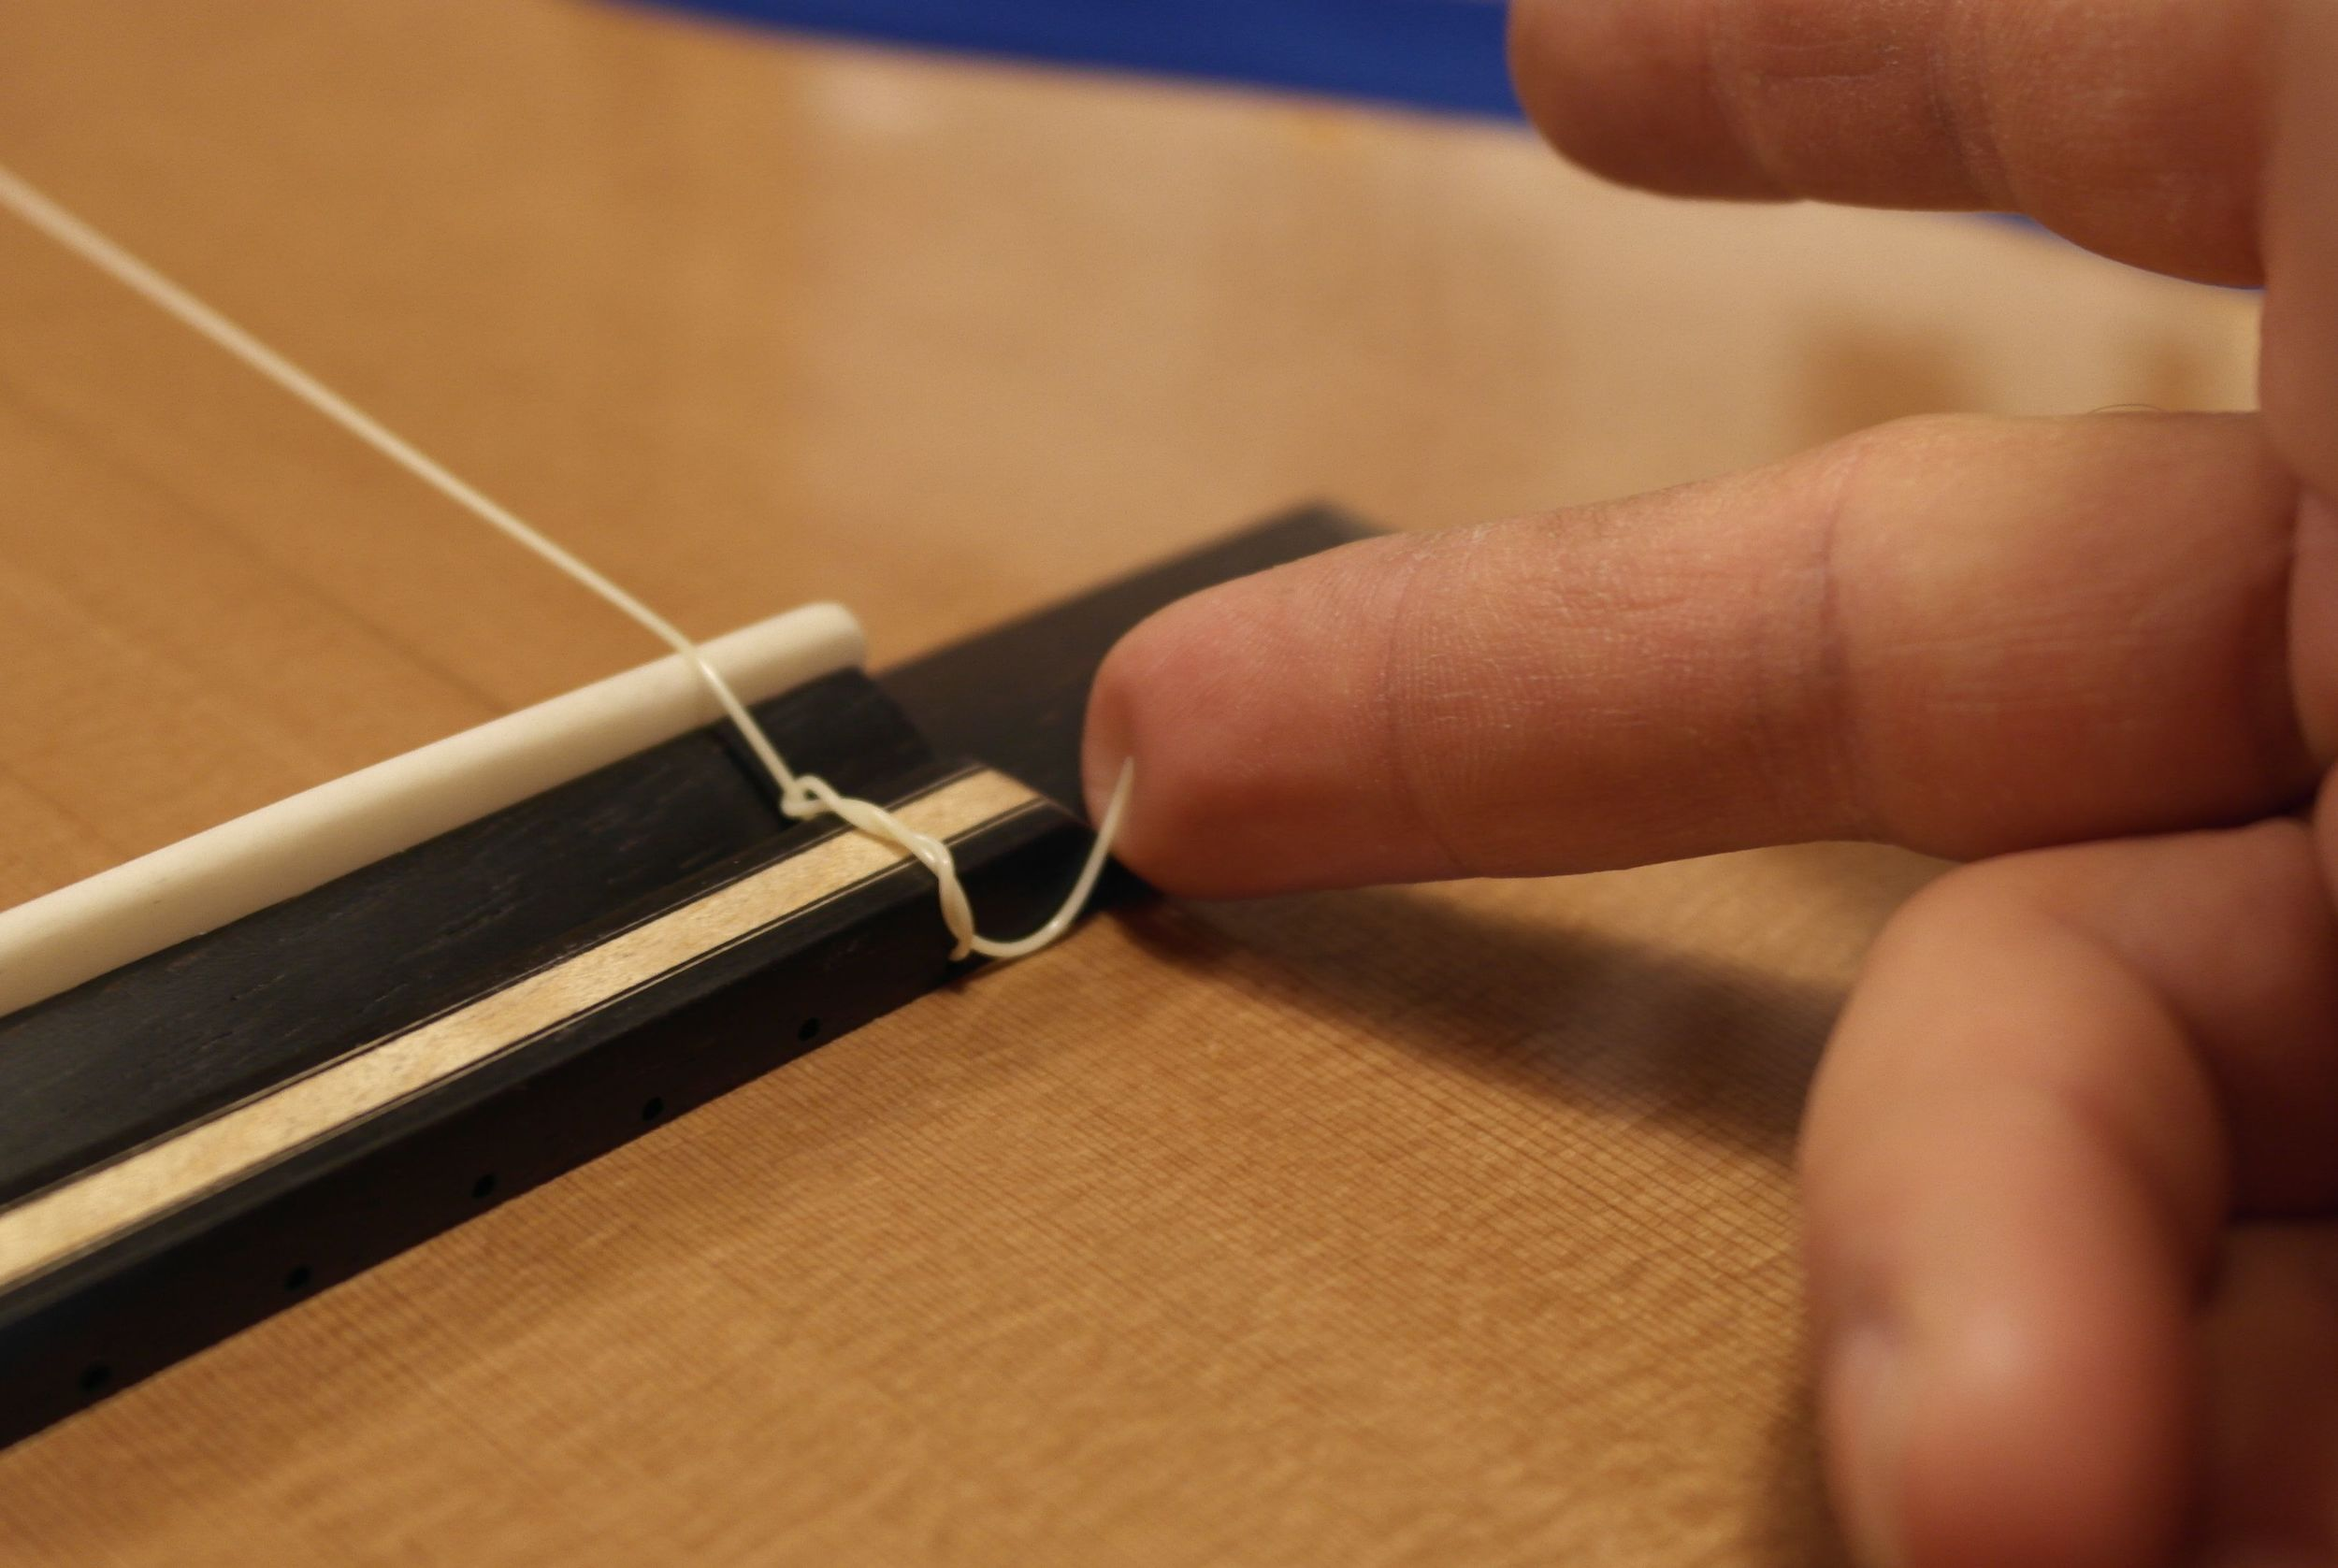 Make sure the string end is locked against the rear faceof the tie block and noton top or else it will slip.